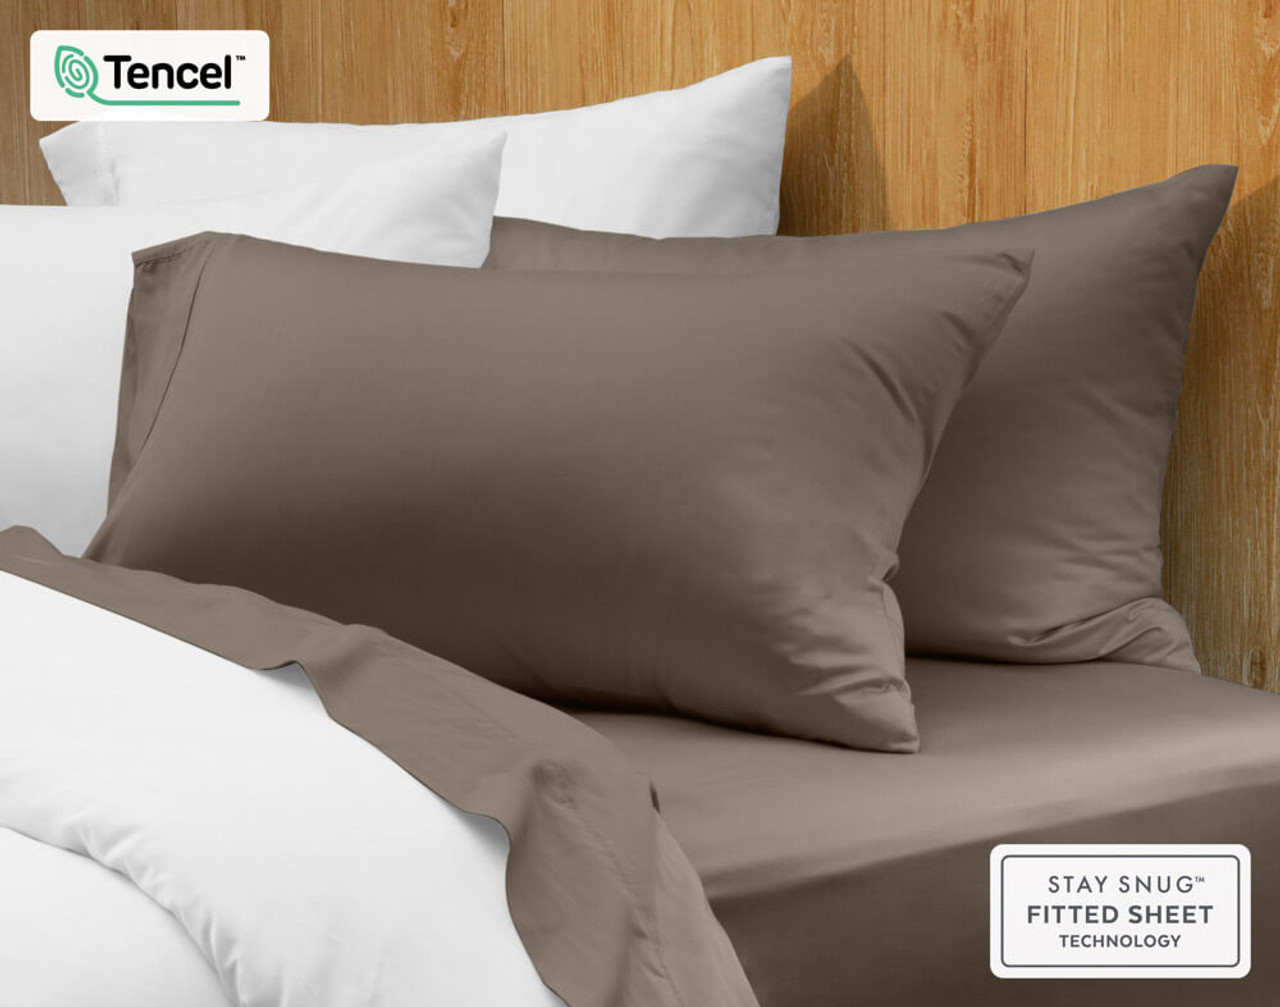 BeechBliss Modal Pillowcase in Porcini Brown on bed